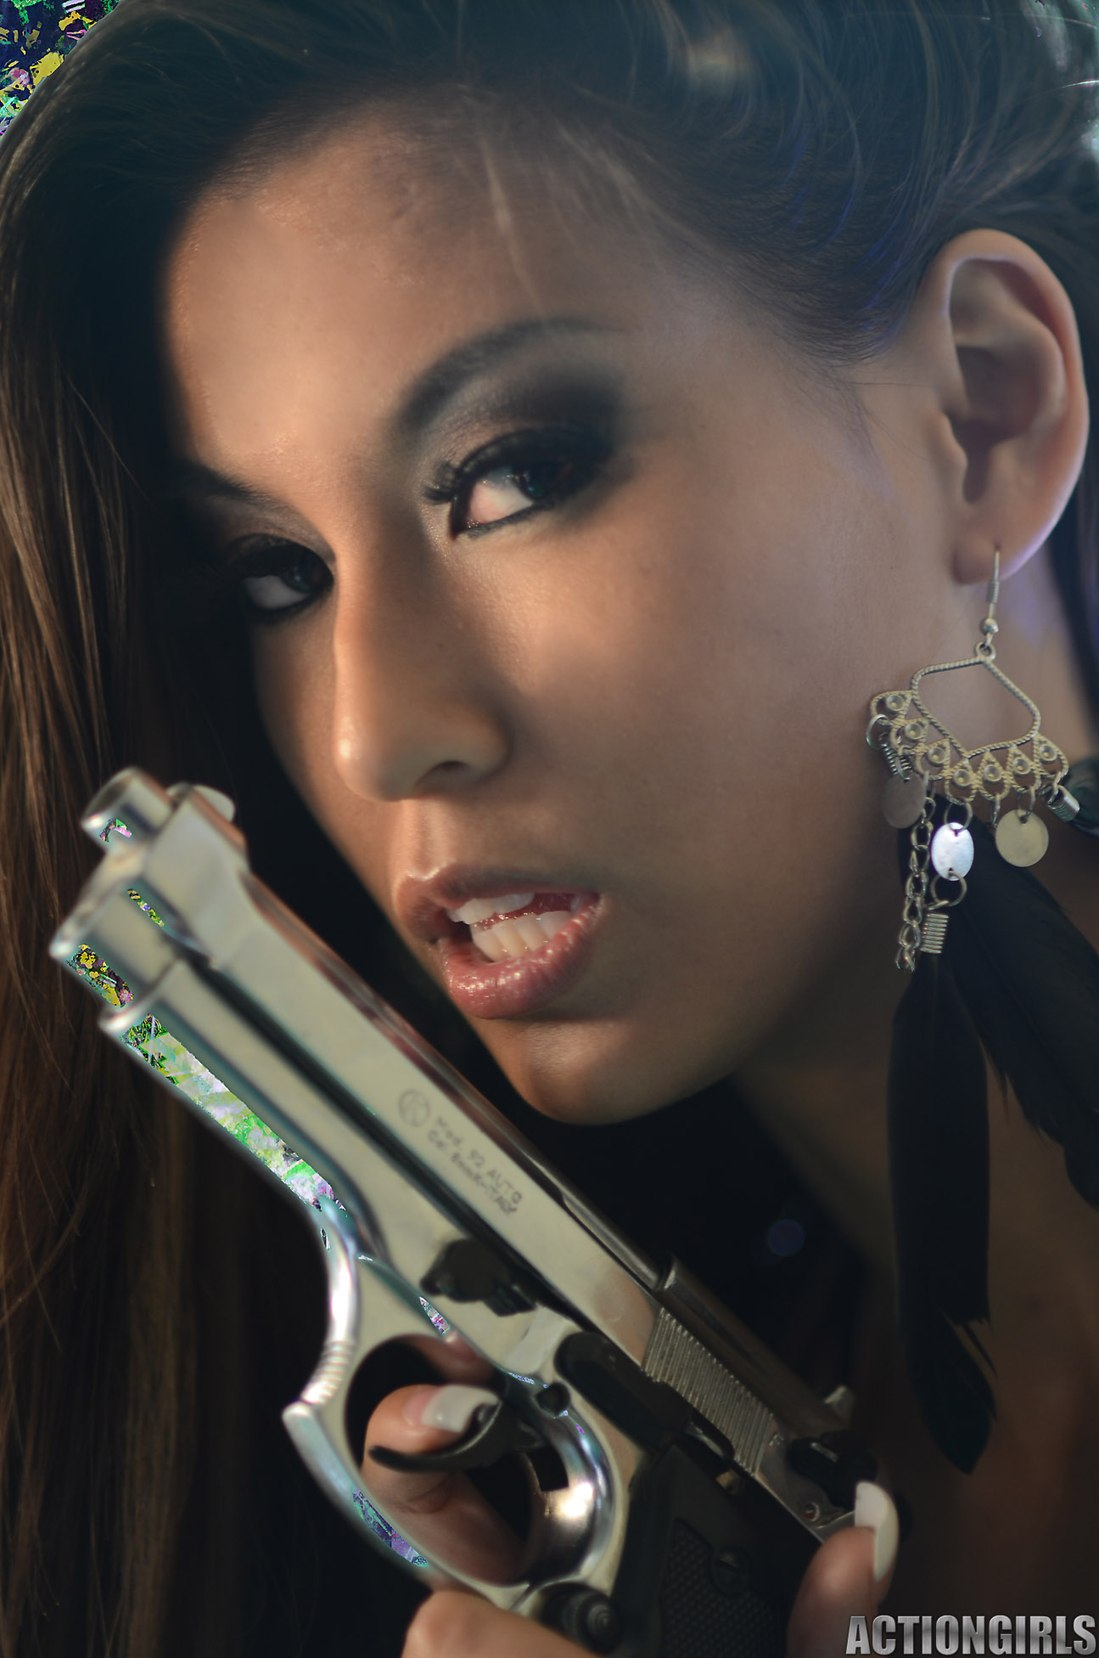 With guns girls bad